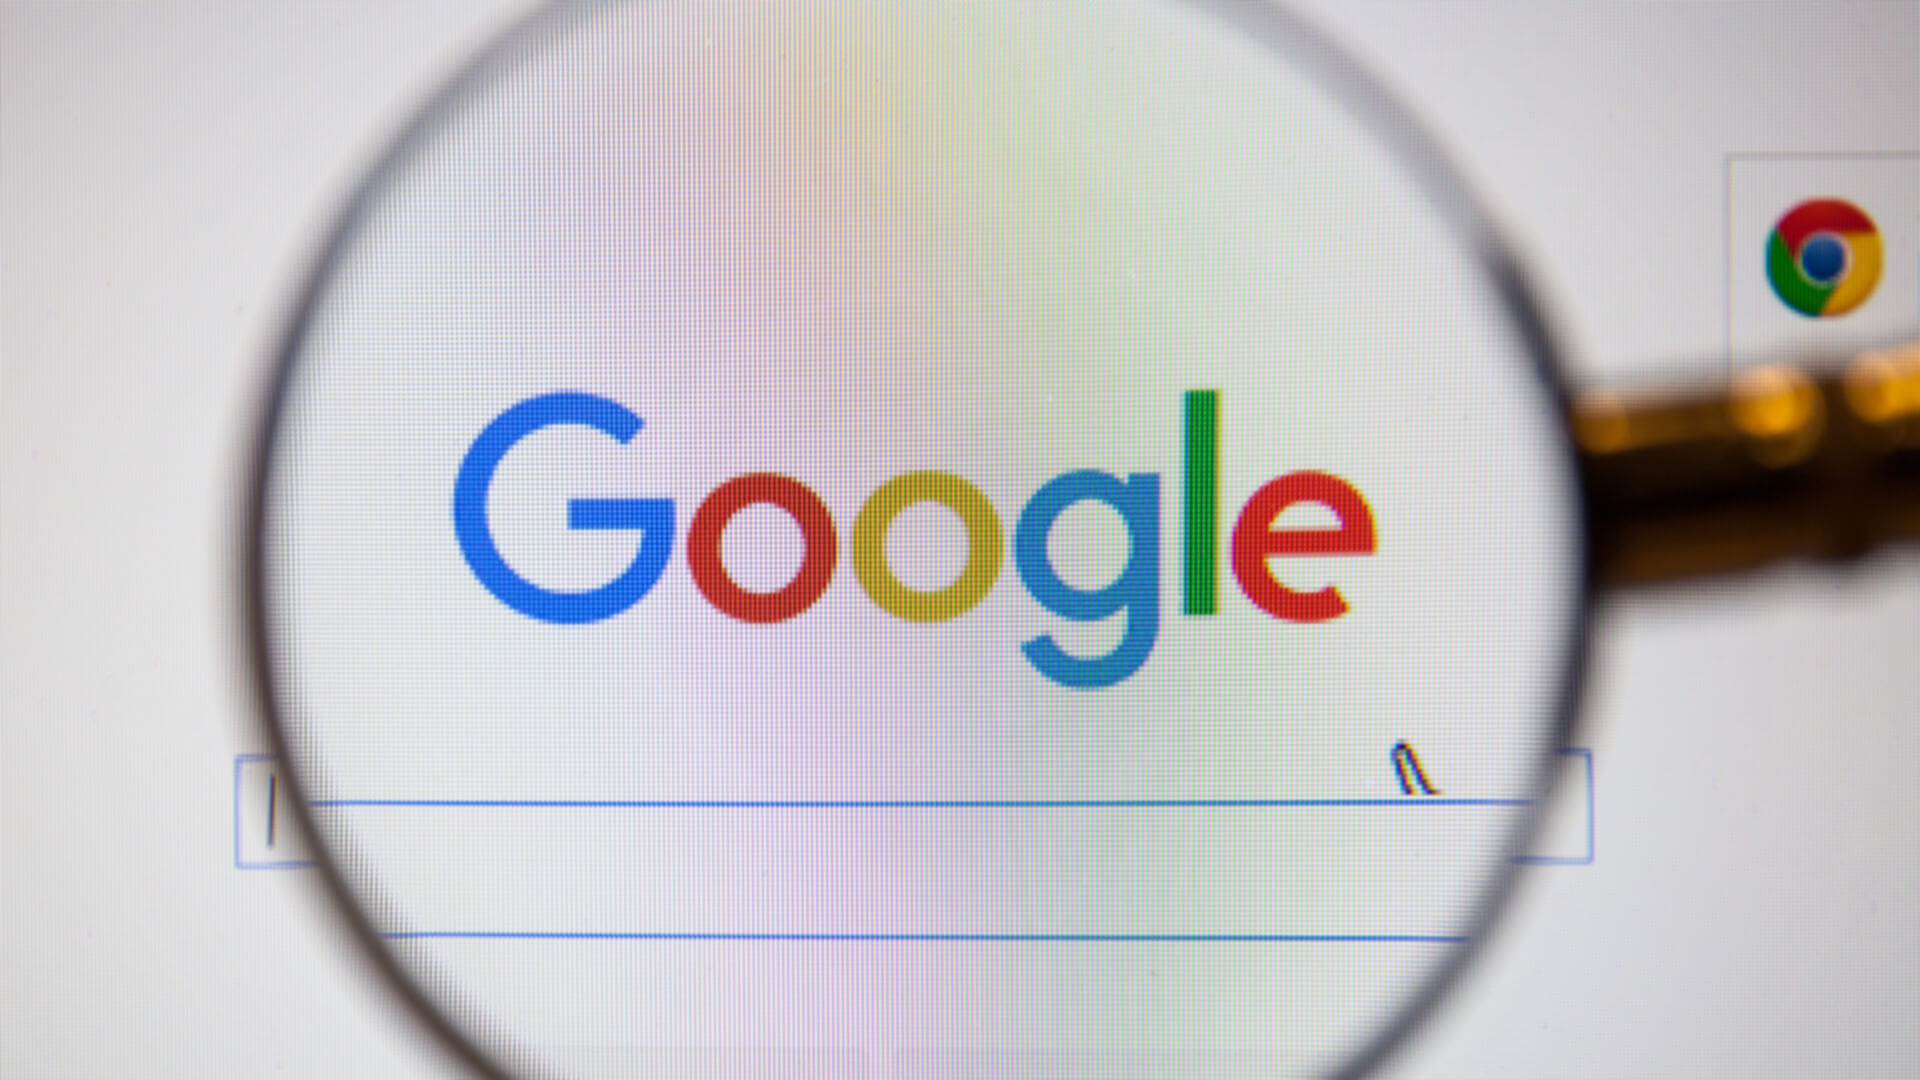 google-search-new-logo1-ss-1920-1